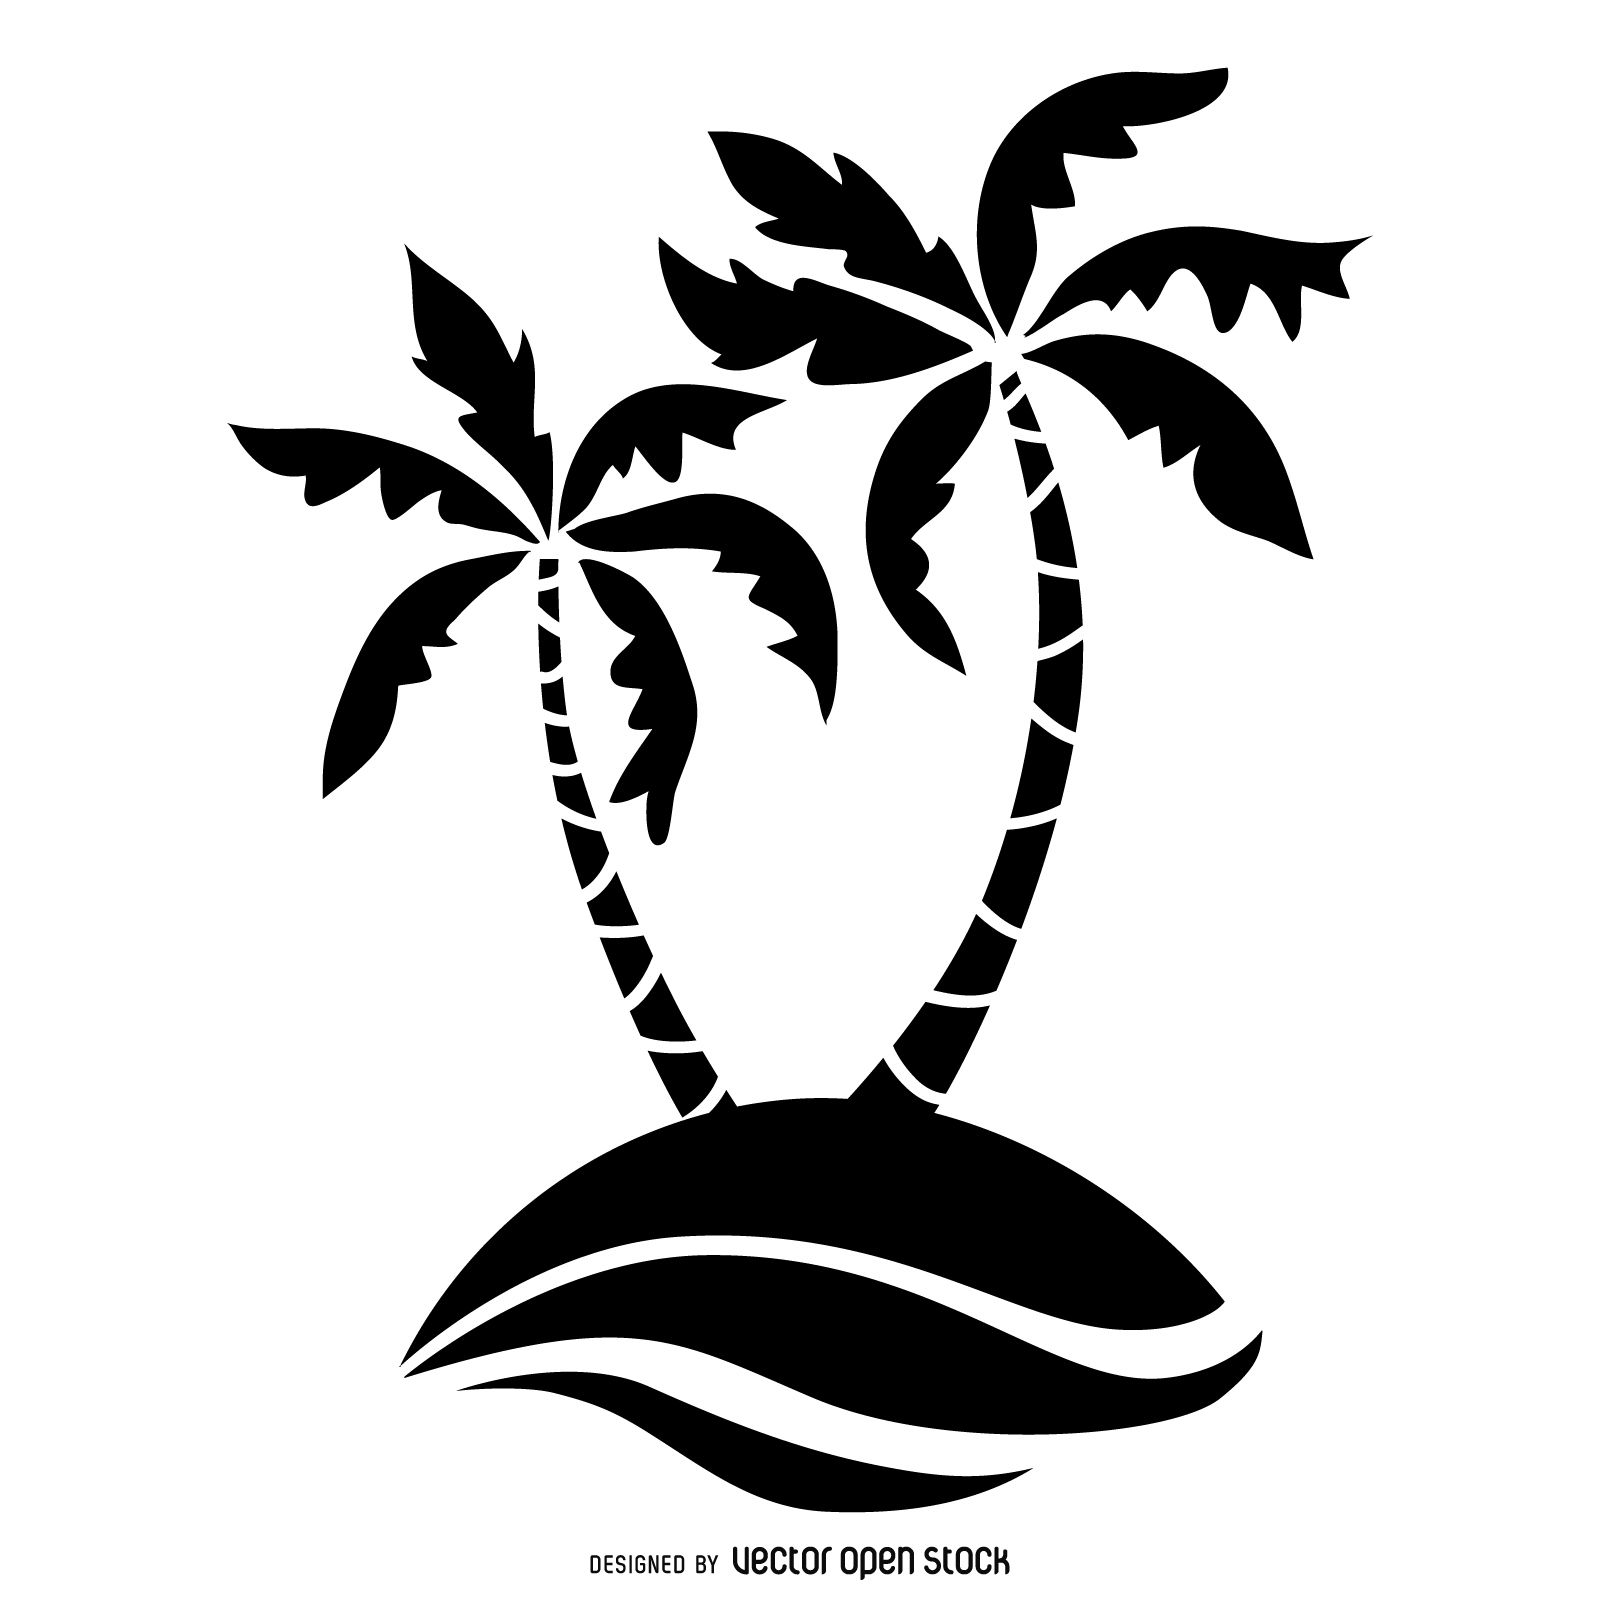 Palm tree silhouette illustration Download Image 1600x1600px